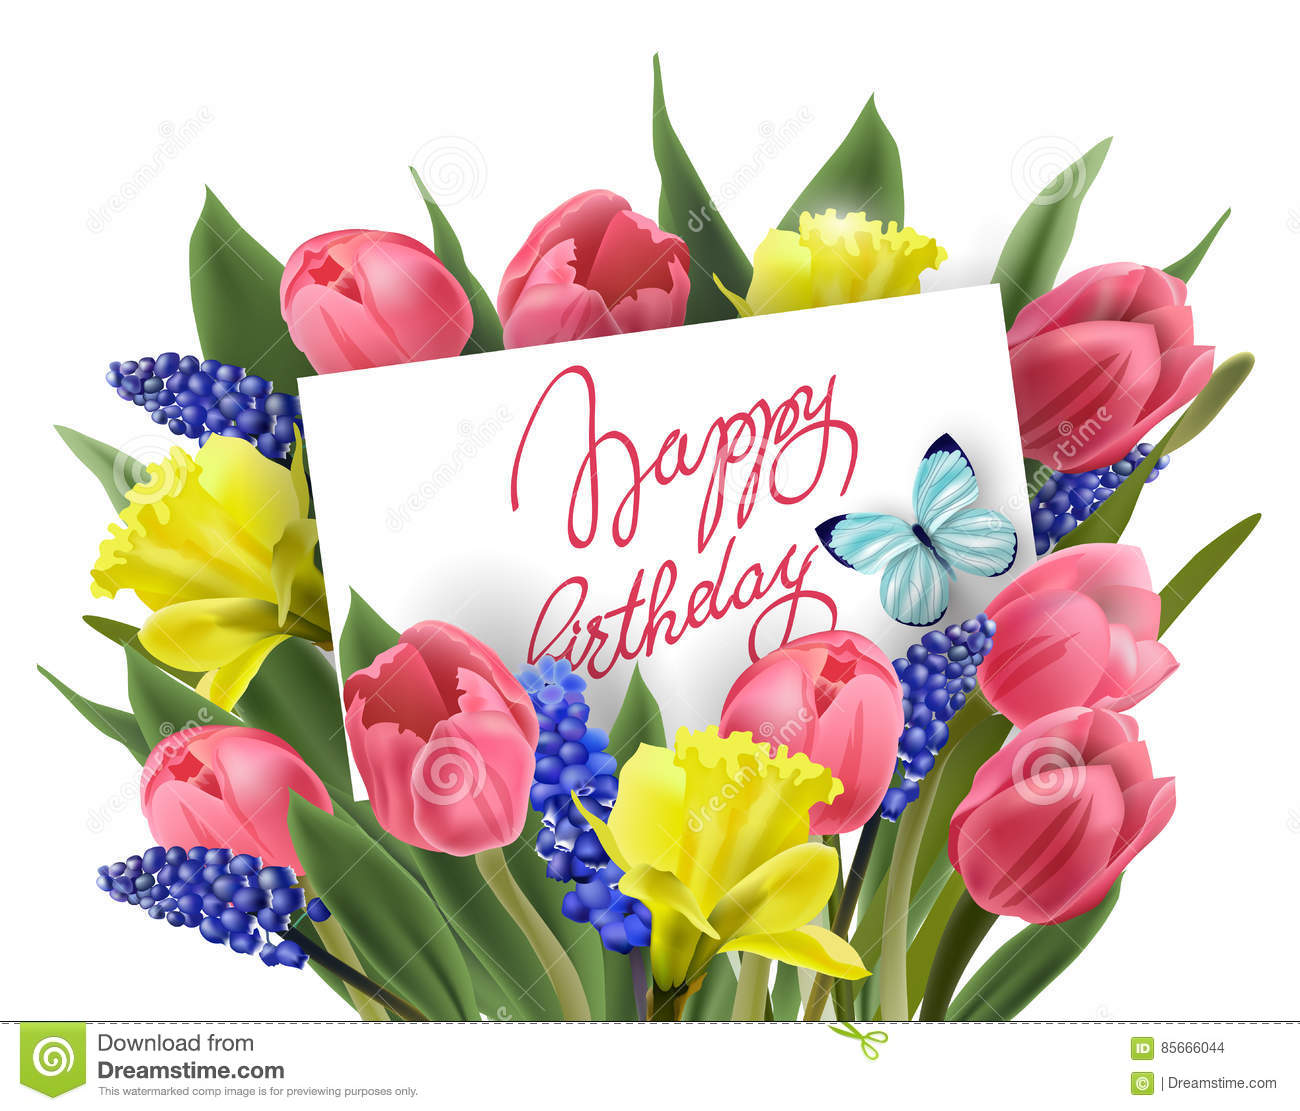 birthday greeting cards images with flowers ; happy-birthday-greeting-card-bouquet-spring-flowers-tulips-daffodils-muscari-vector-template-85666044